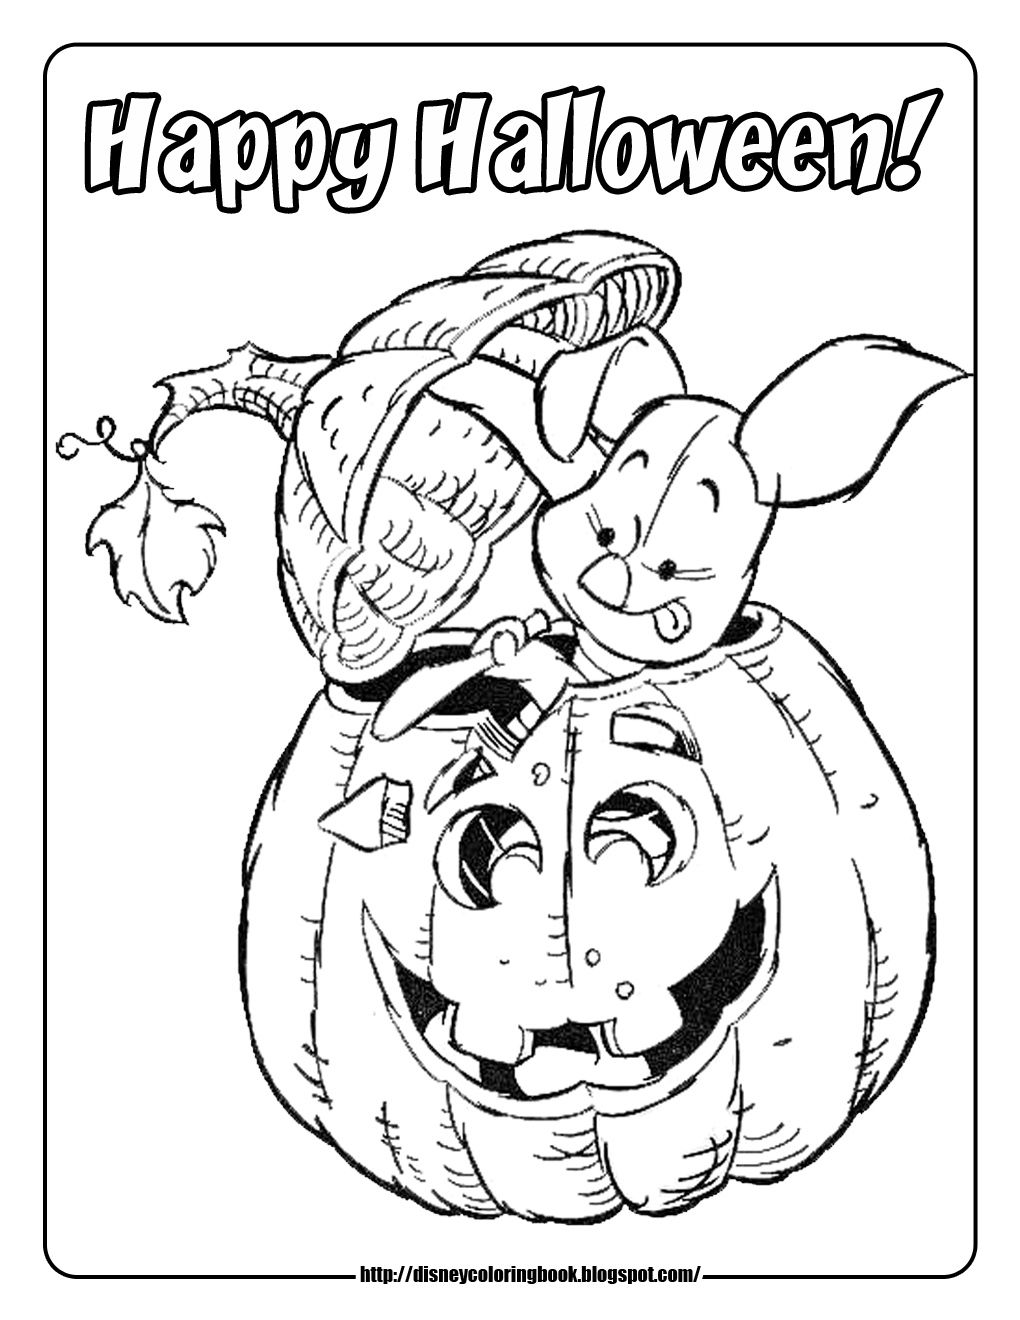 Disney Coloring Pages and Sheets for Kids Pooh and